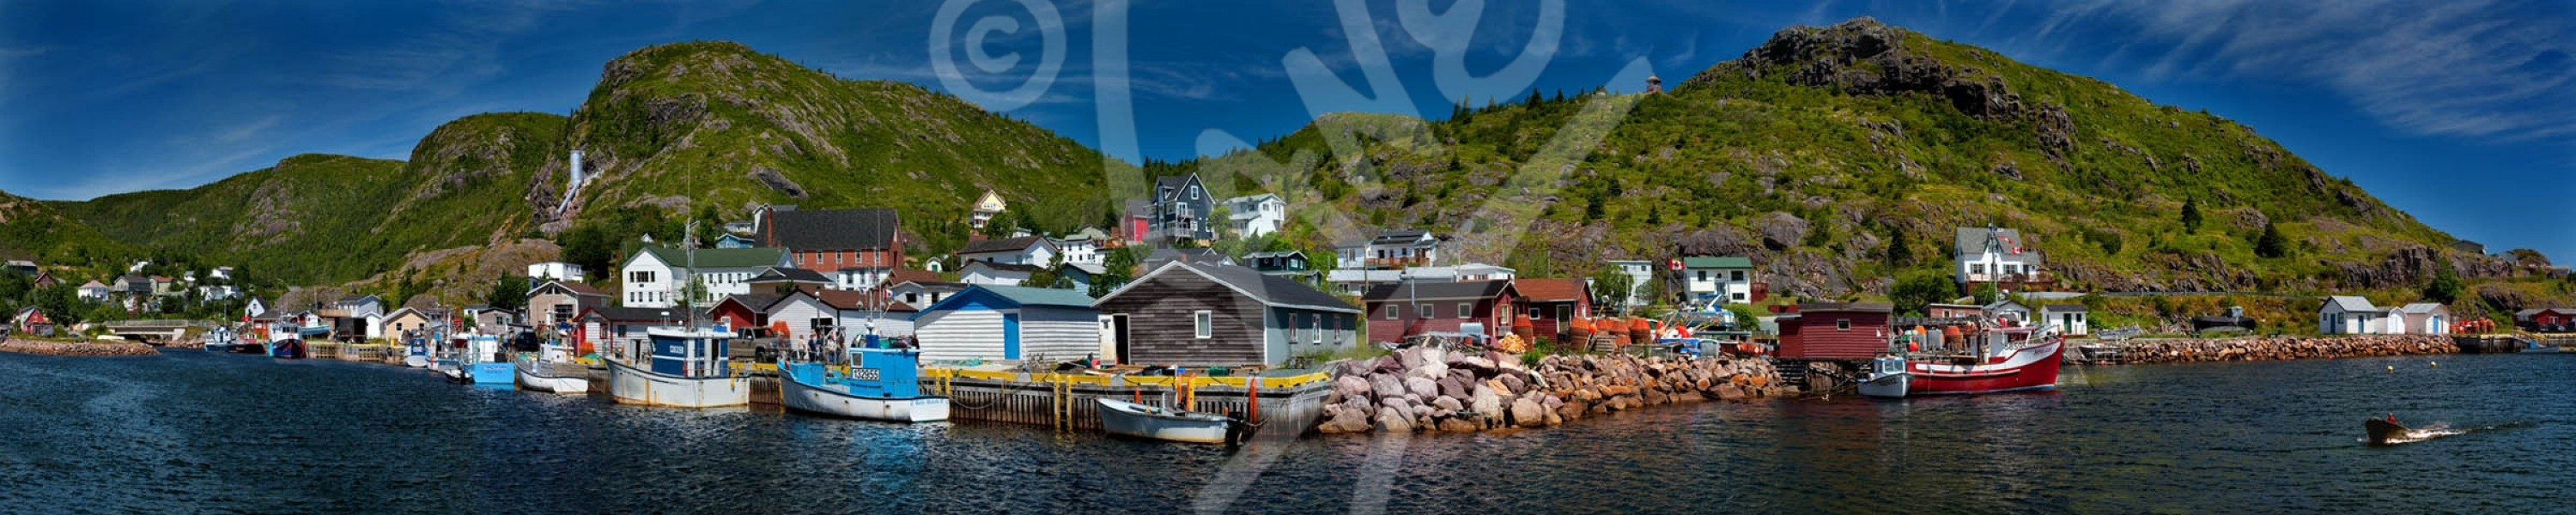 Petty Harbour, north side